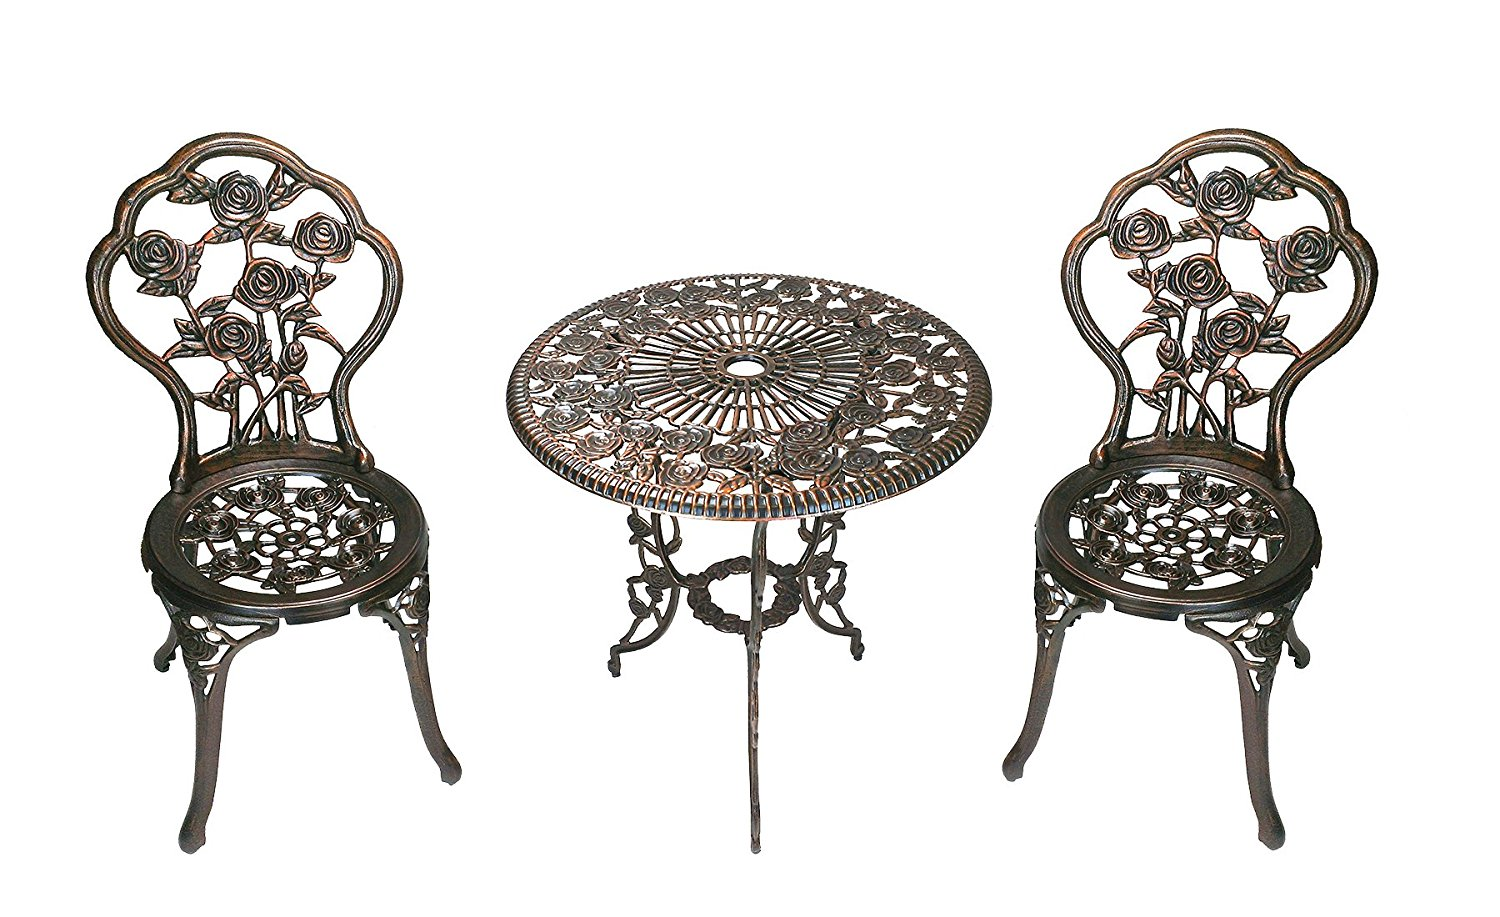 Wrought Iron Table And Chairs Wrought Iron Patio Furniture For Home Backyard Cool